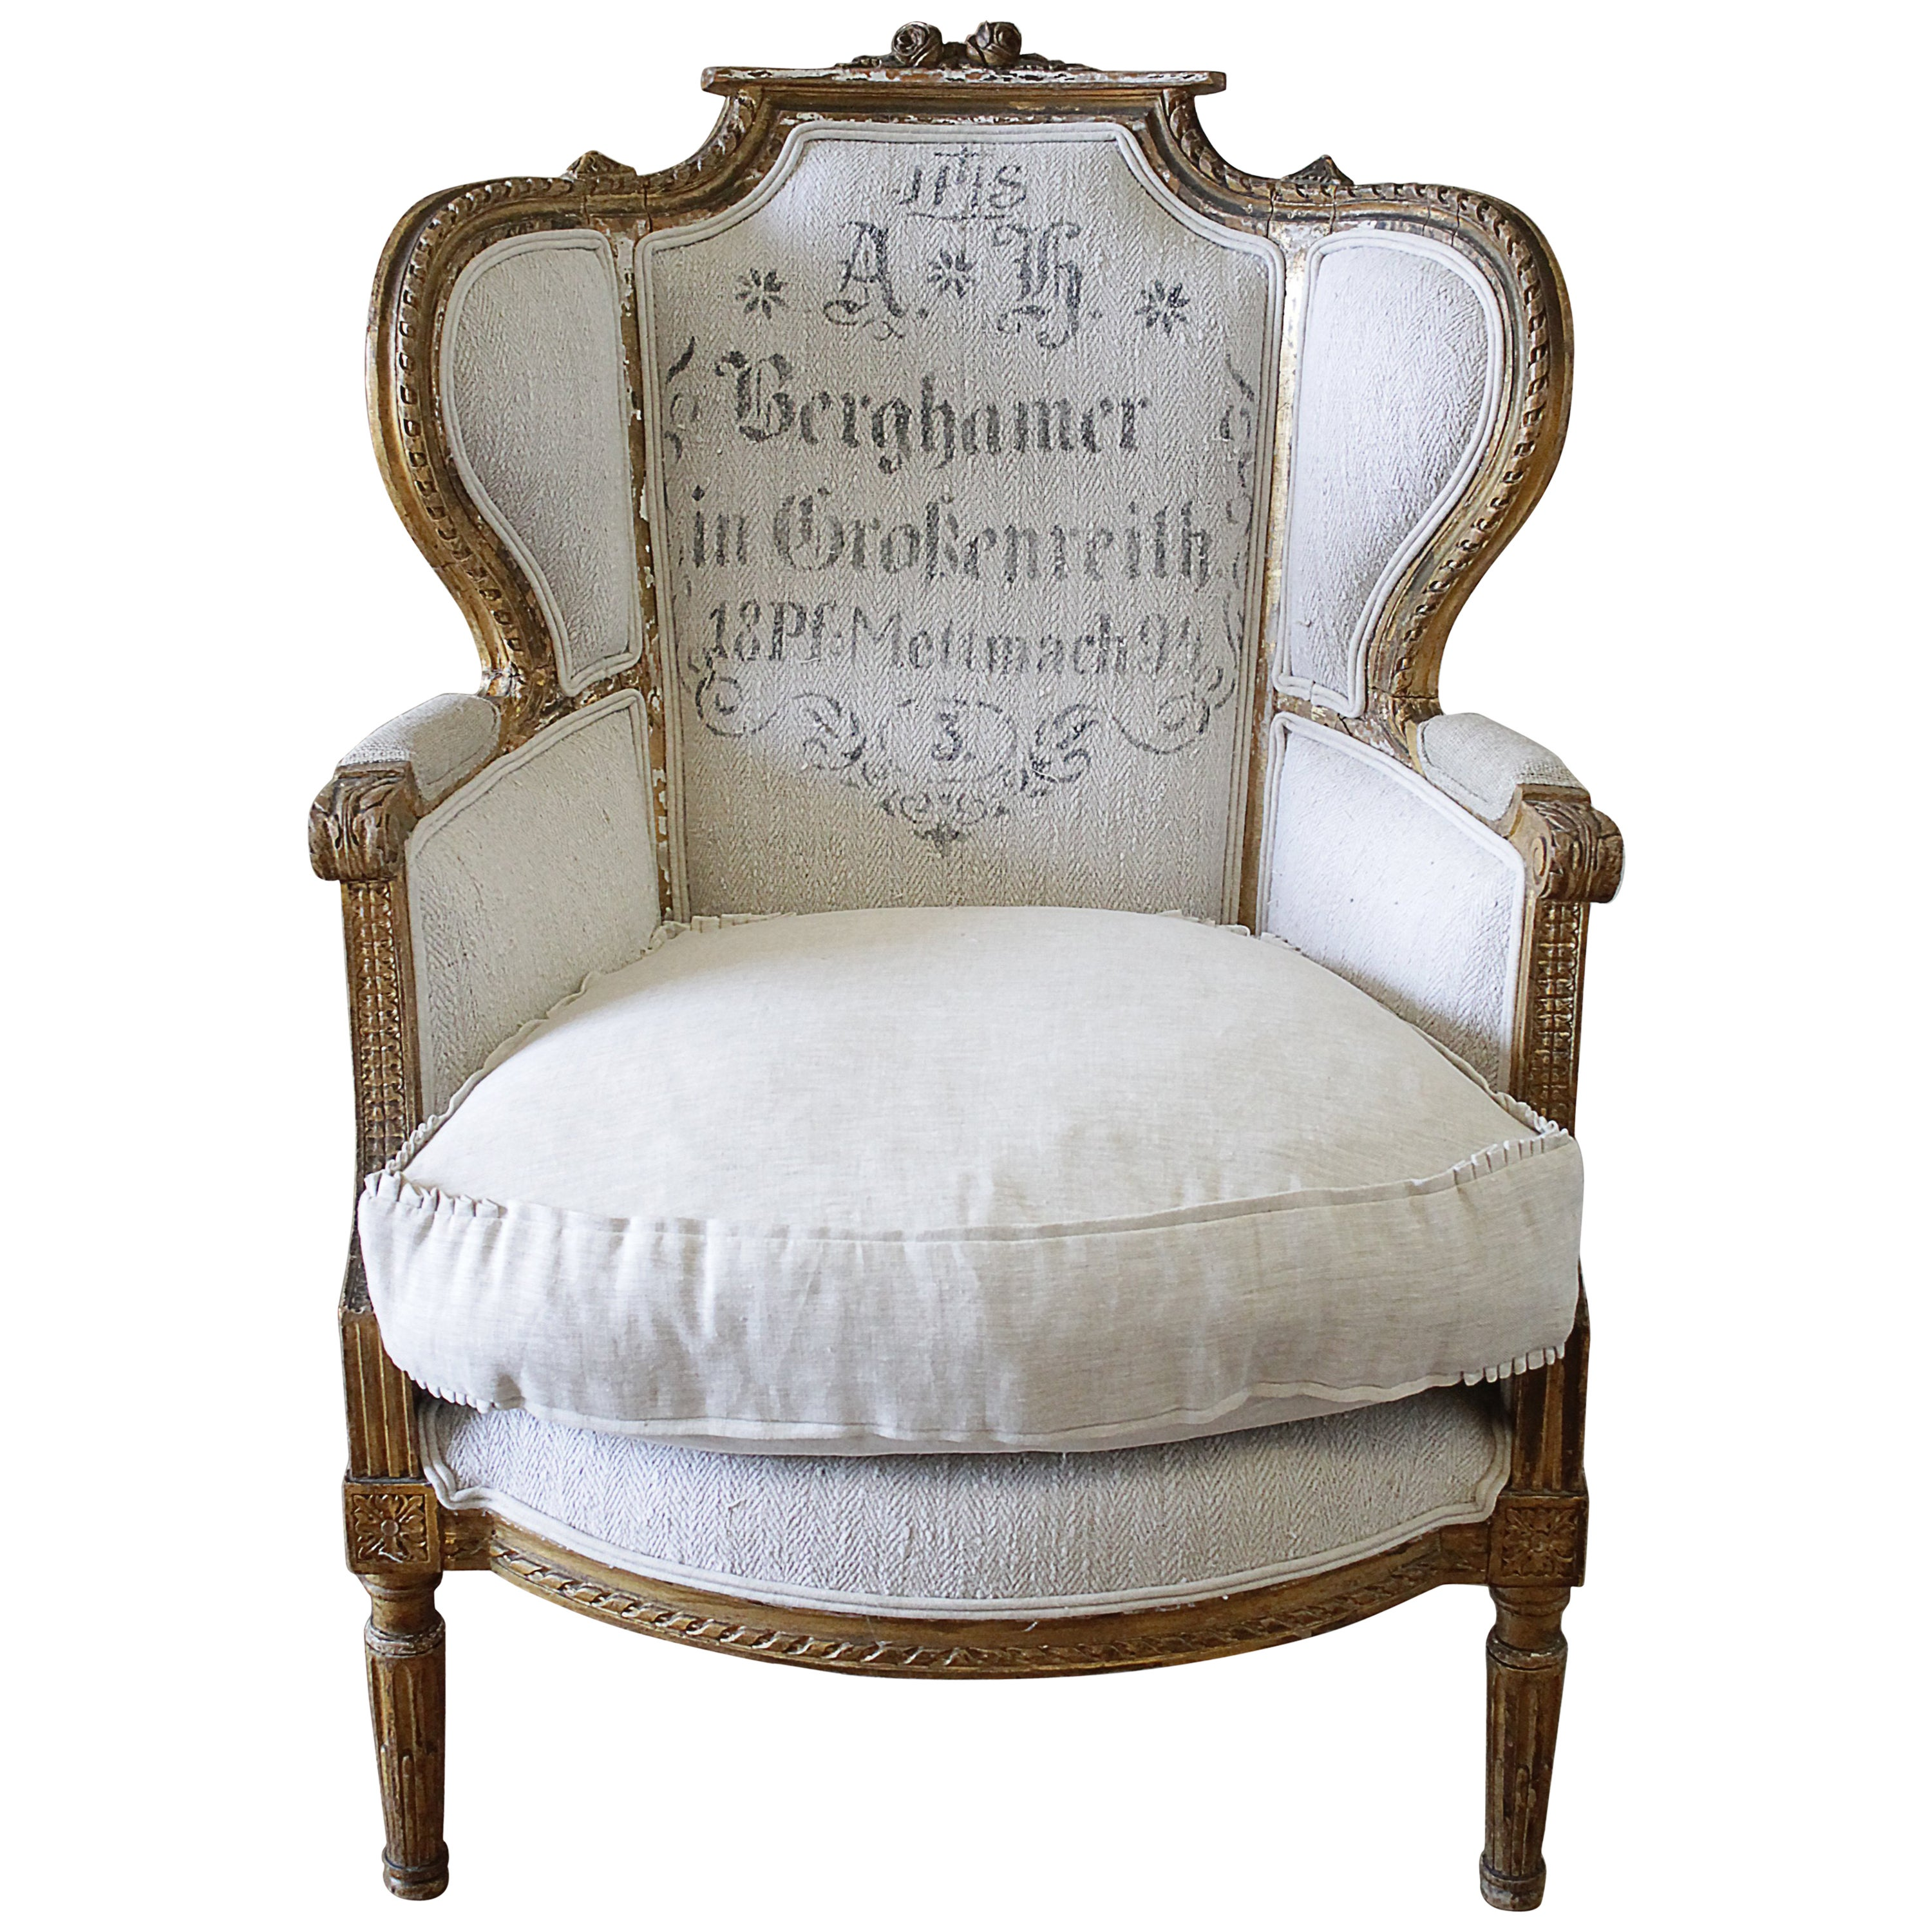 Grain Sack Chair Antique French Louis Xvi Style Wing Chair In Antique Grain Sack Upholstery